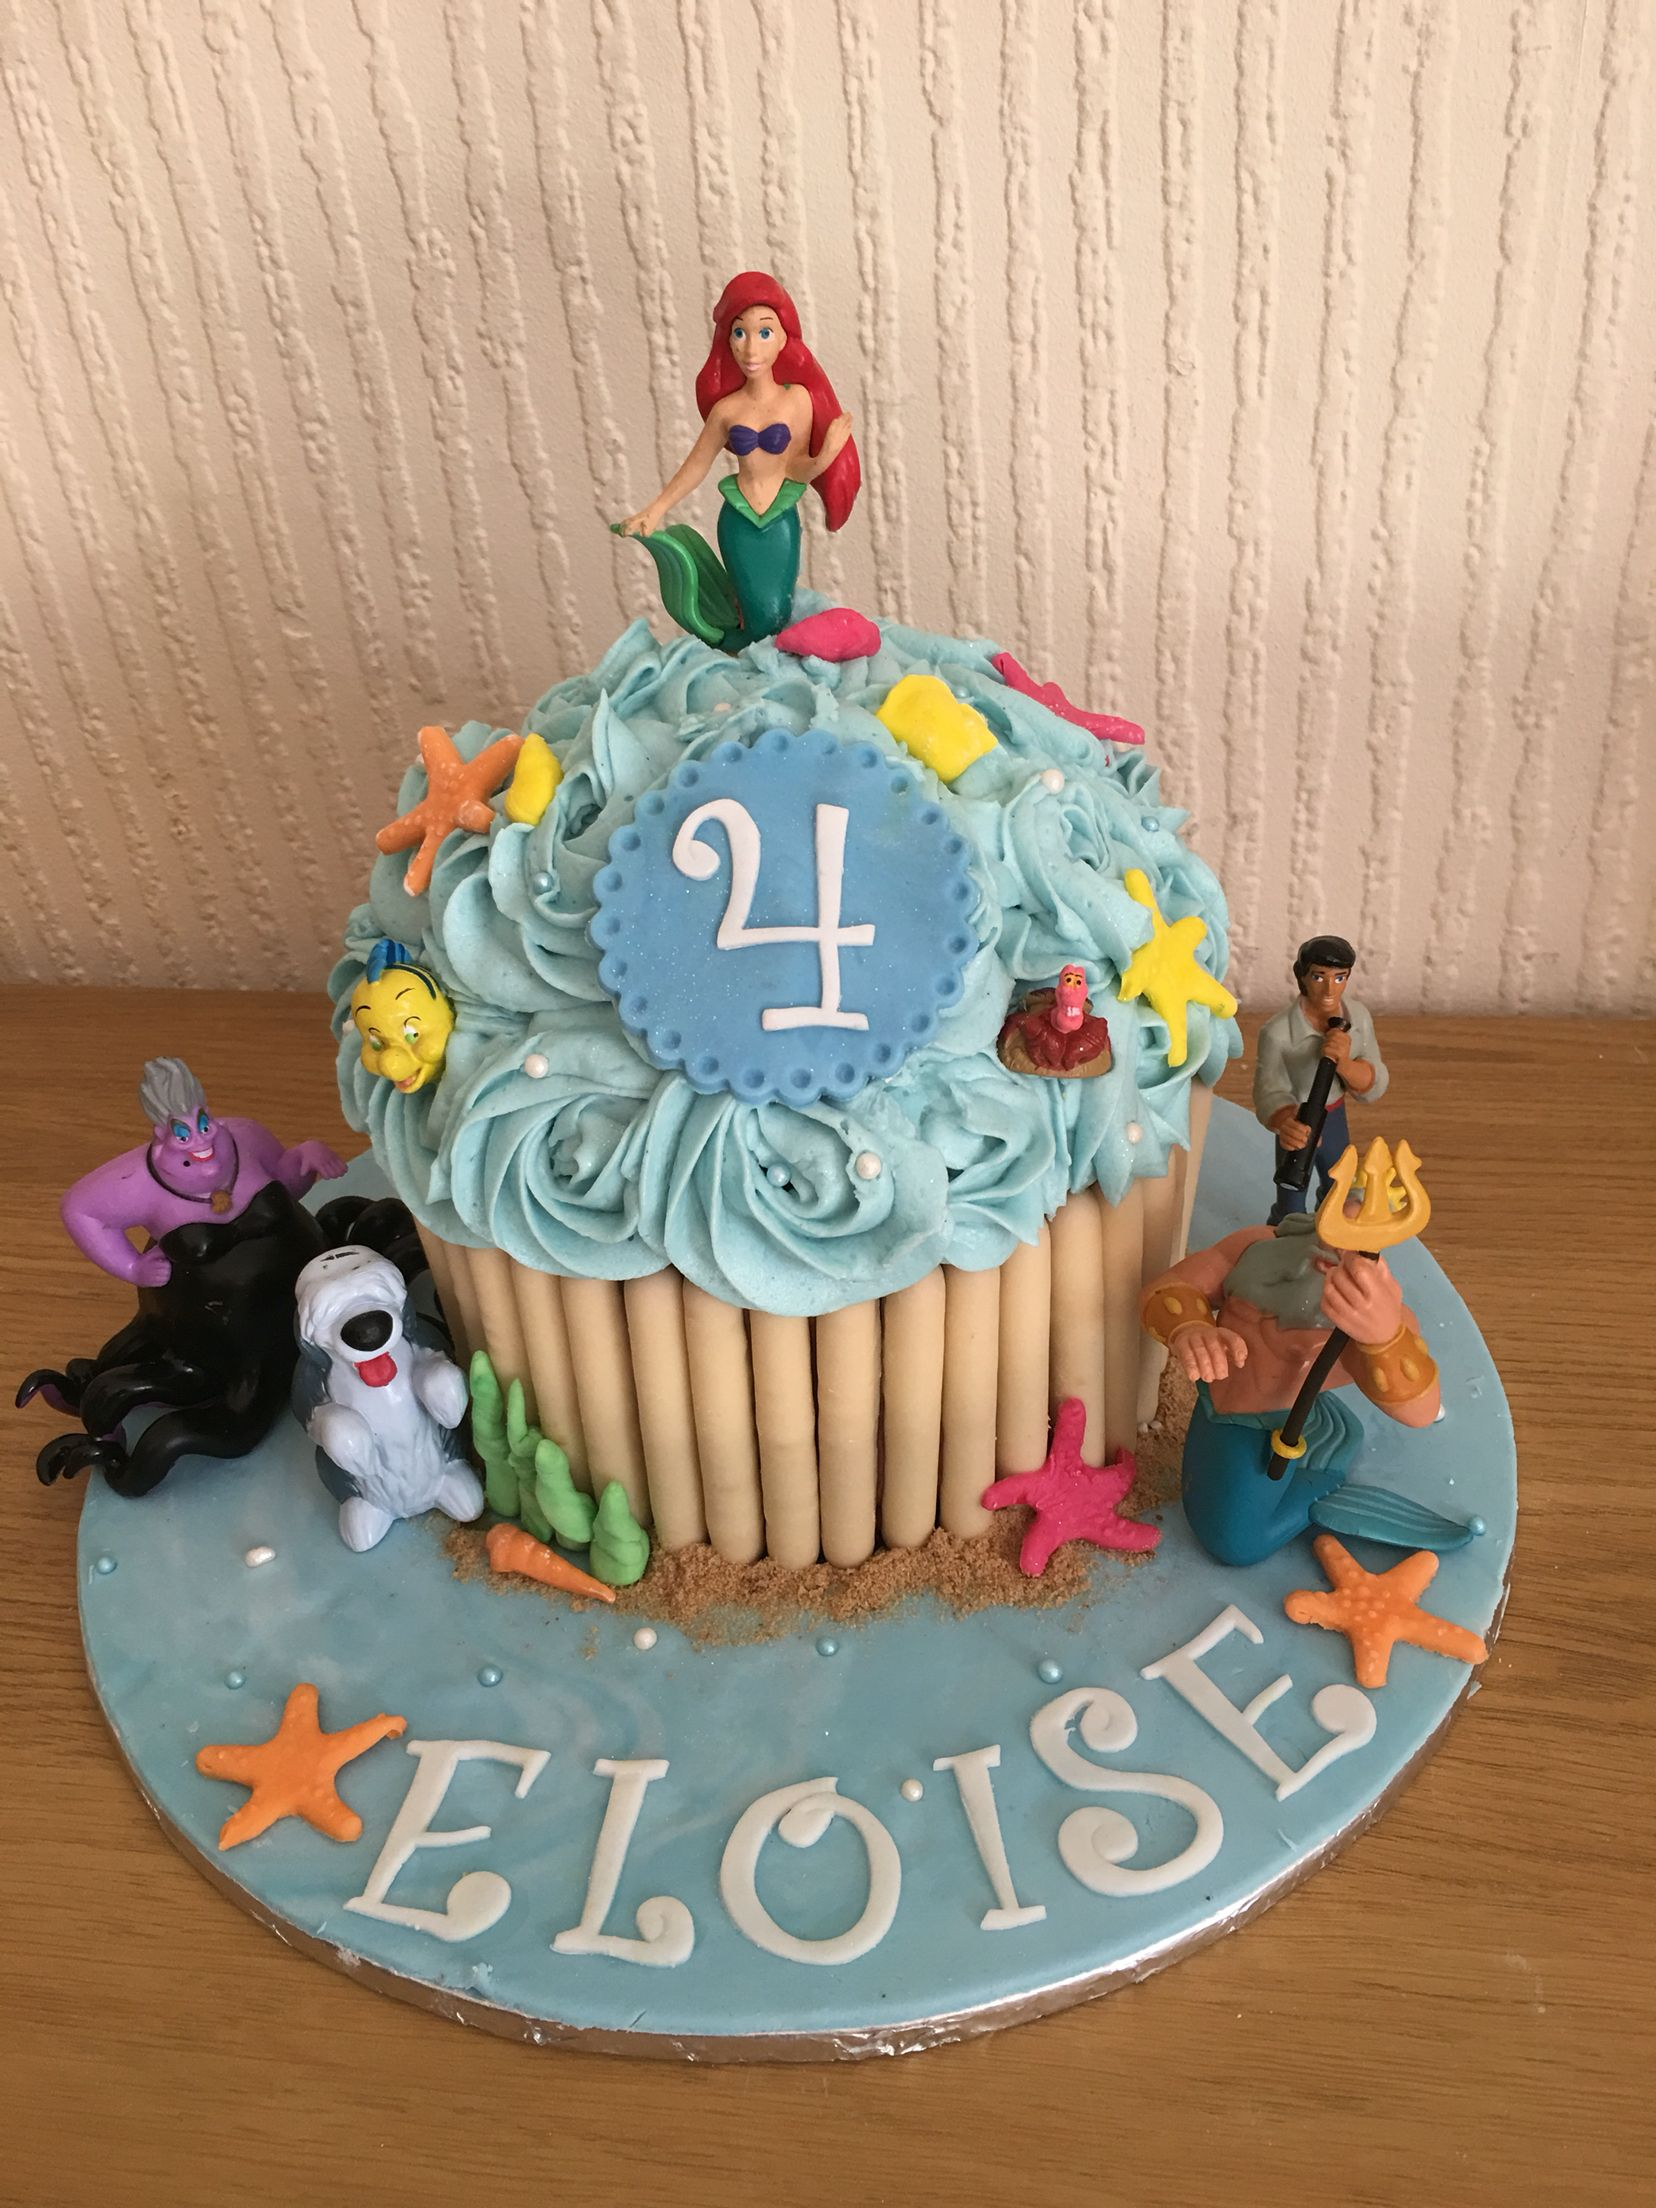 Superb The Little Mermaid Giant Cupcake Ariel With Images Giant Personalised Birthday Cards Sponlily Jamesorg